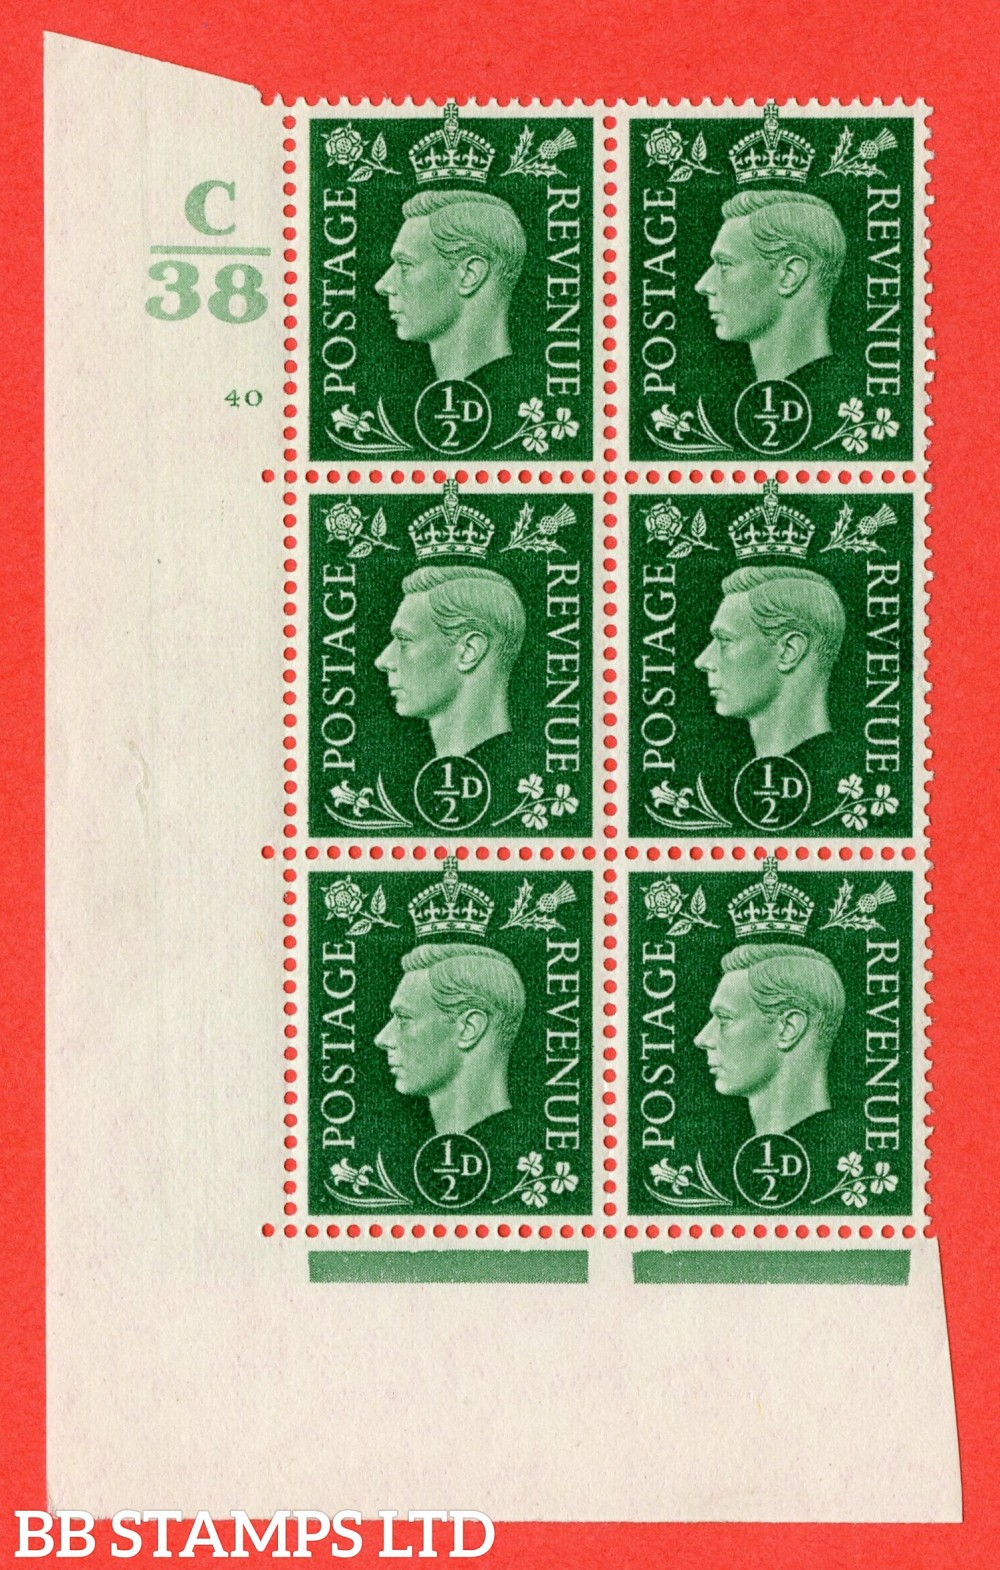 """SG. 462. Q1. ½d Green. A fine UNMOUNTED MINT """" Control C38 cylinder 40 no dot """" block of 6 with perf type 5 E/I with marginal rule."""